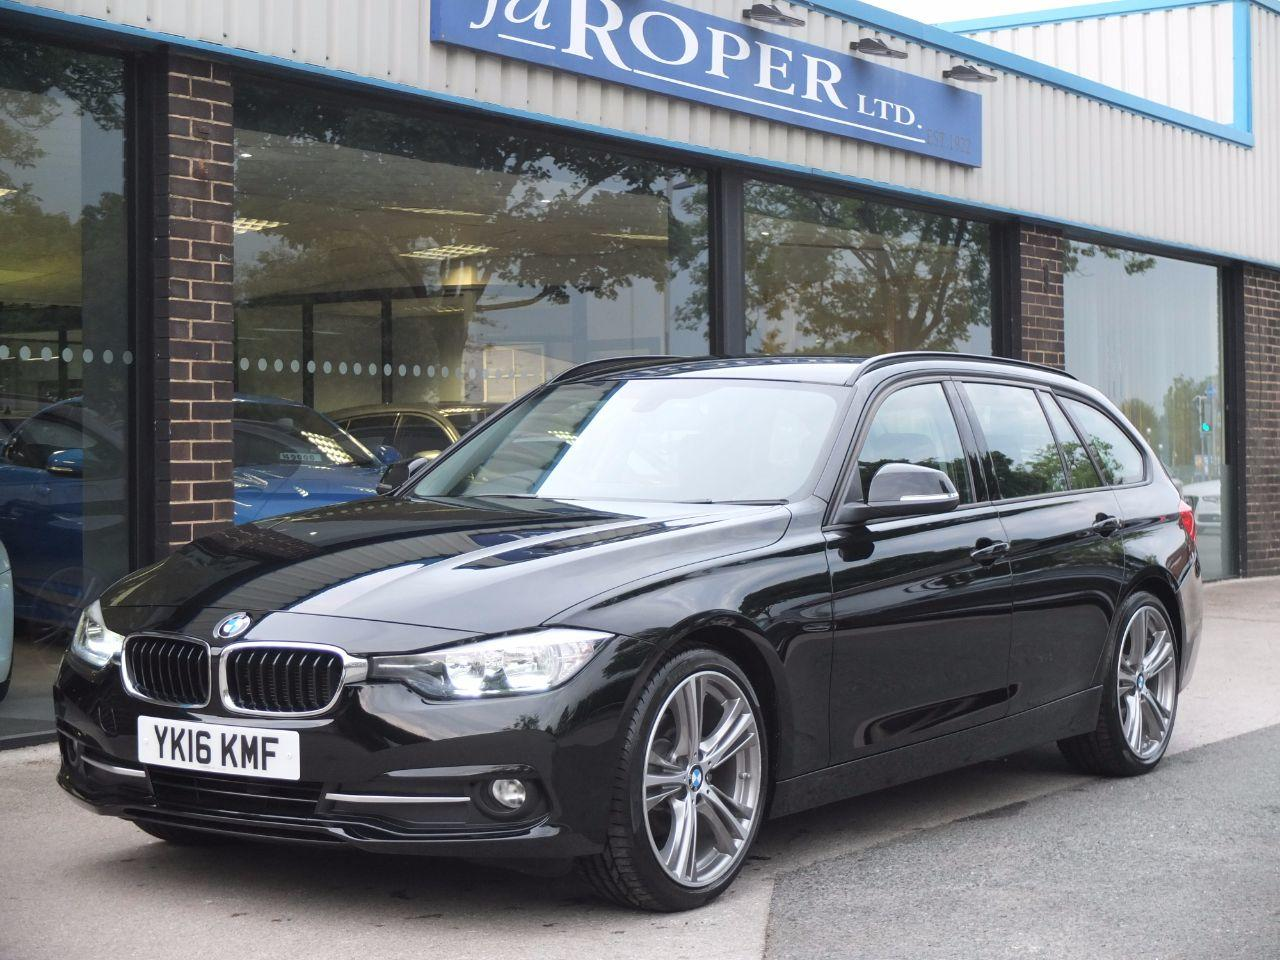 BMW 3 Series 2.0 320 ED Efficient Dynamics Sport Touring Auto Estate Diesel Jet BlackBMW 3 Series 2.0 320 ED Efficient Dynamics Sport Touring Auto Estate Diesel Jet Black at fa Roper Ltd Bradford